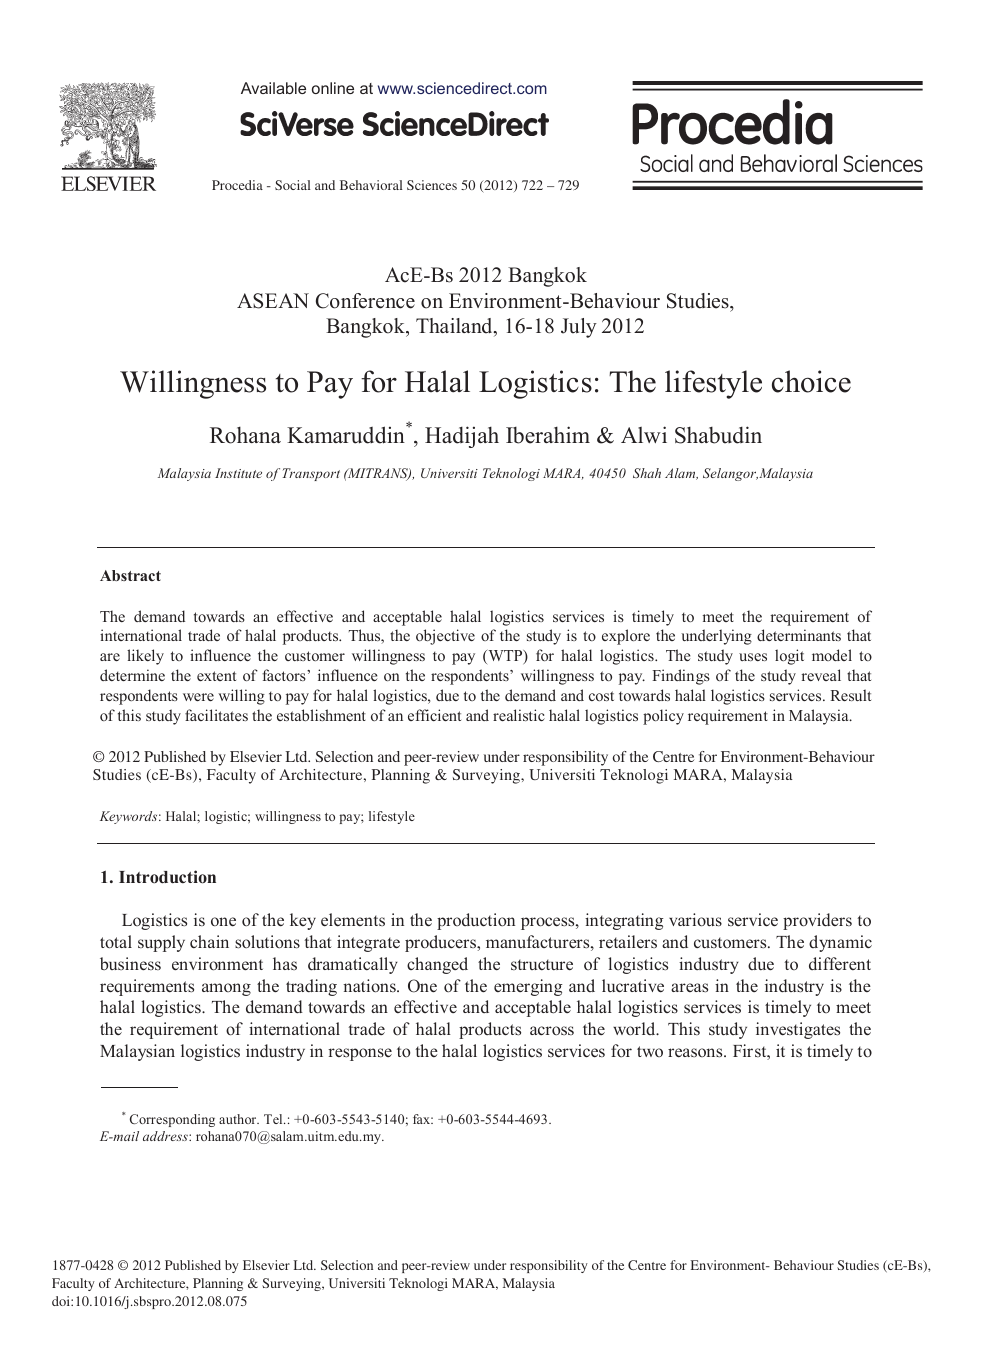 Willingness to Pay for Halal Logistics: The Lifestyle Choice – topic